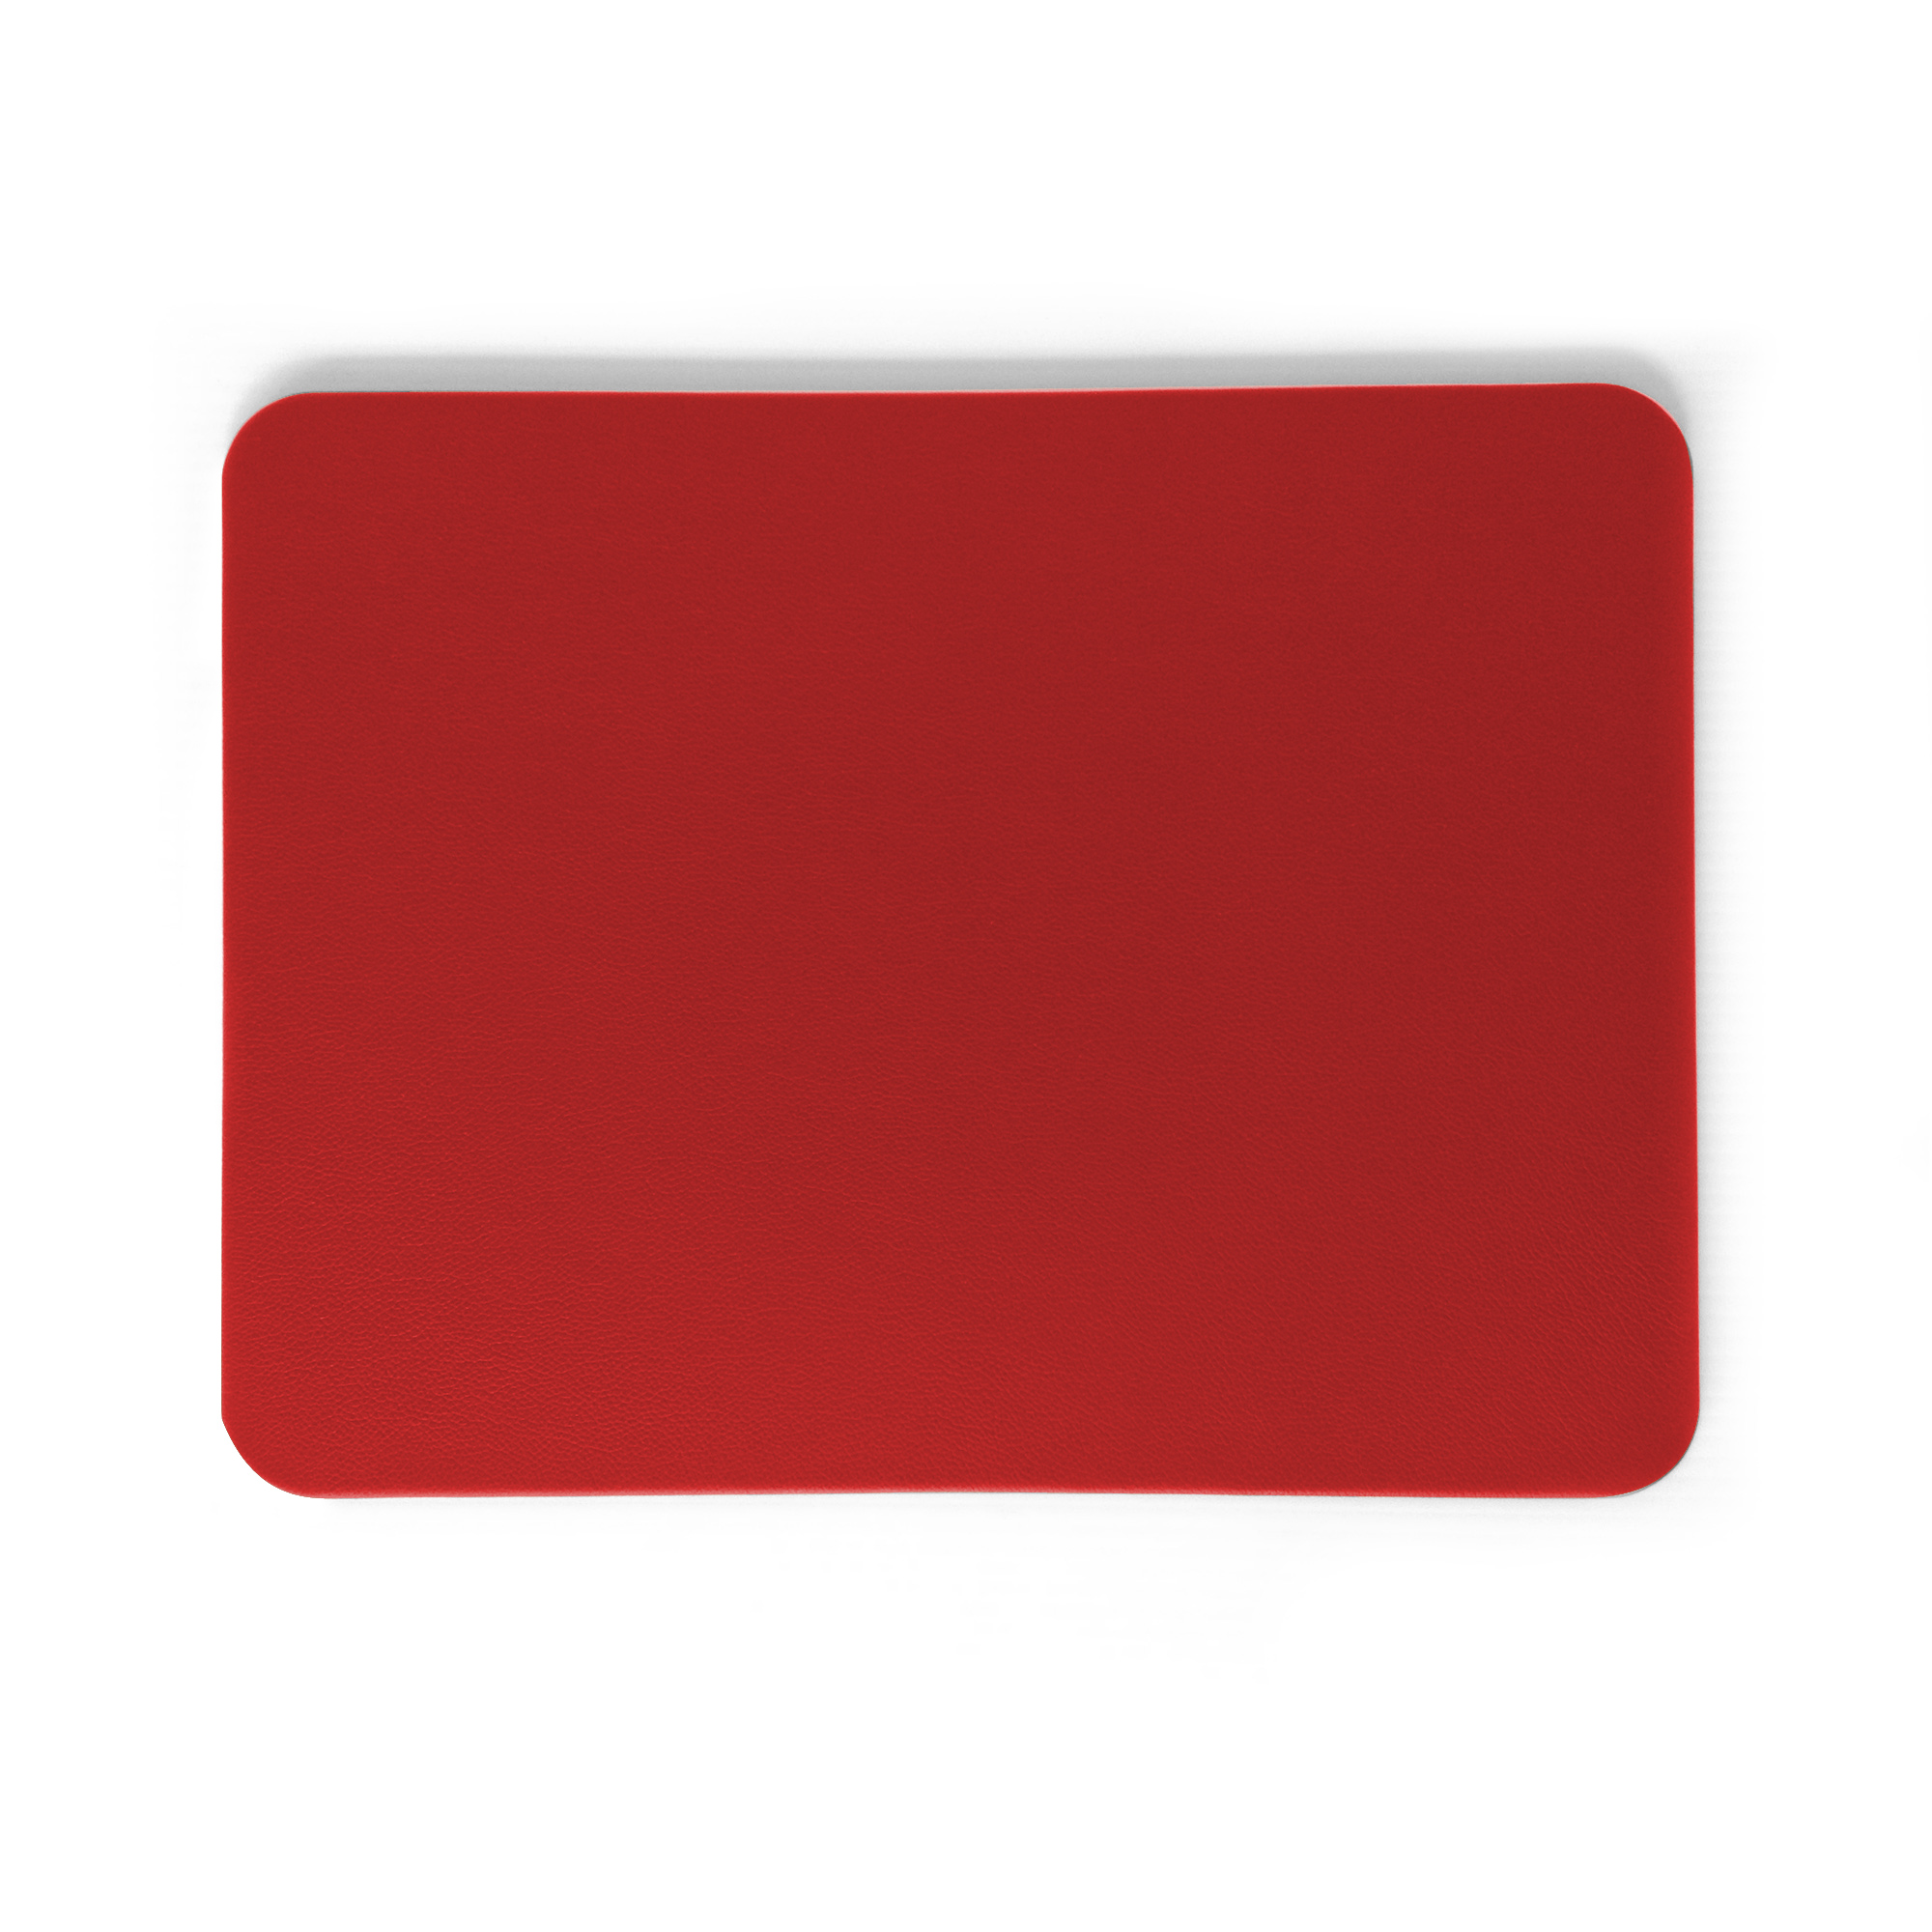 Classic Rosa Red Leather Desk Pad